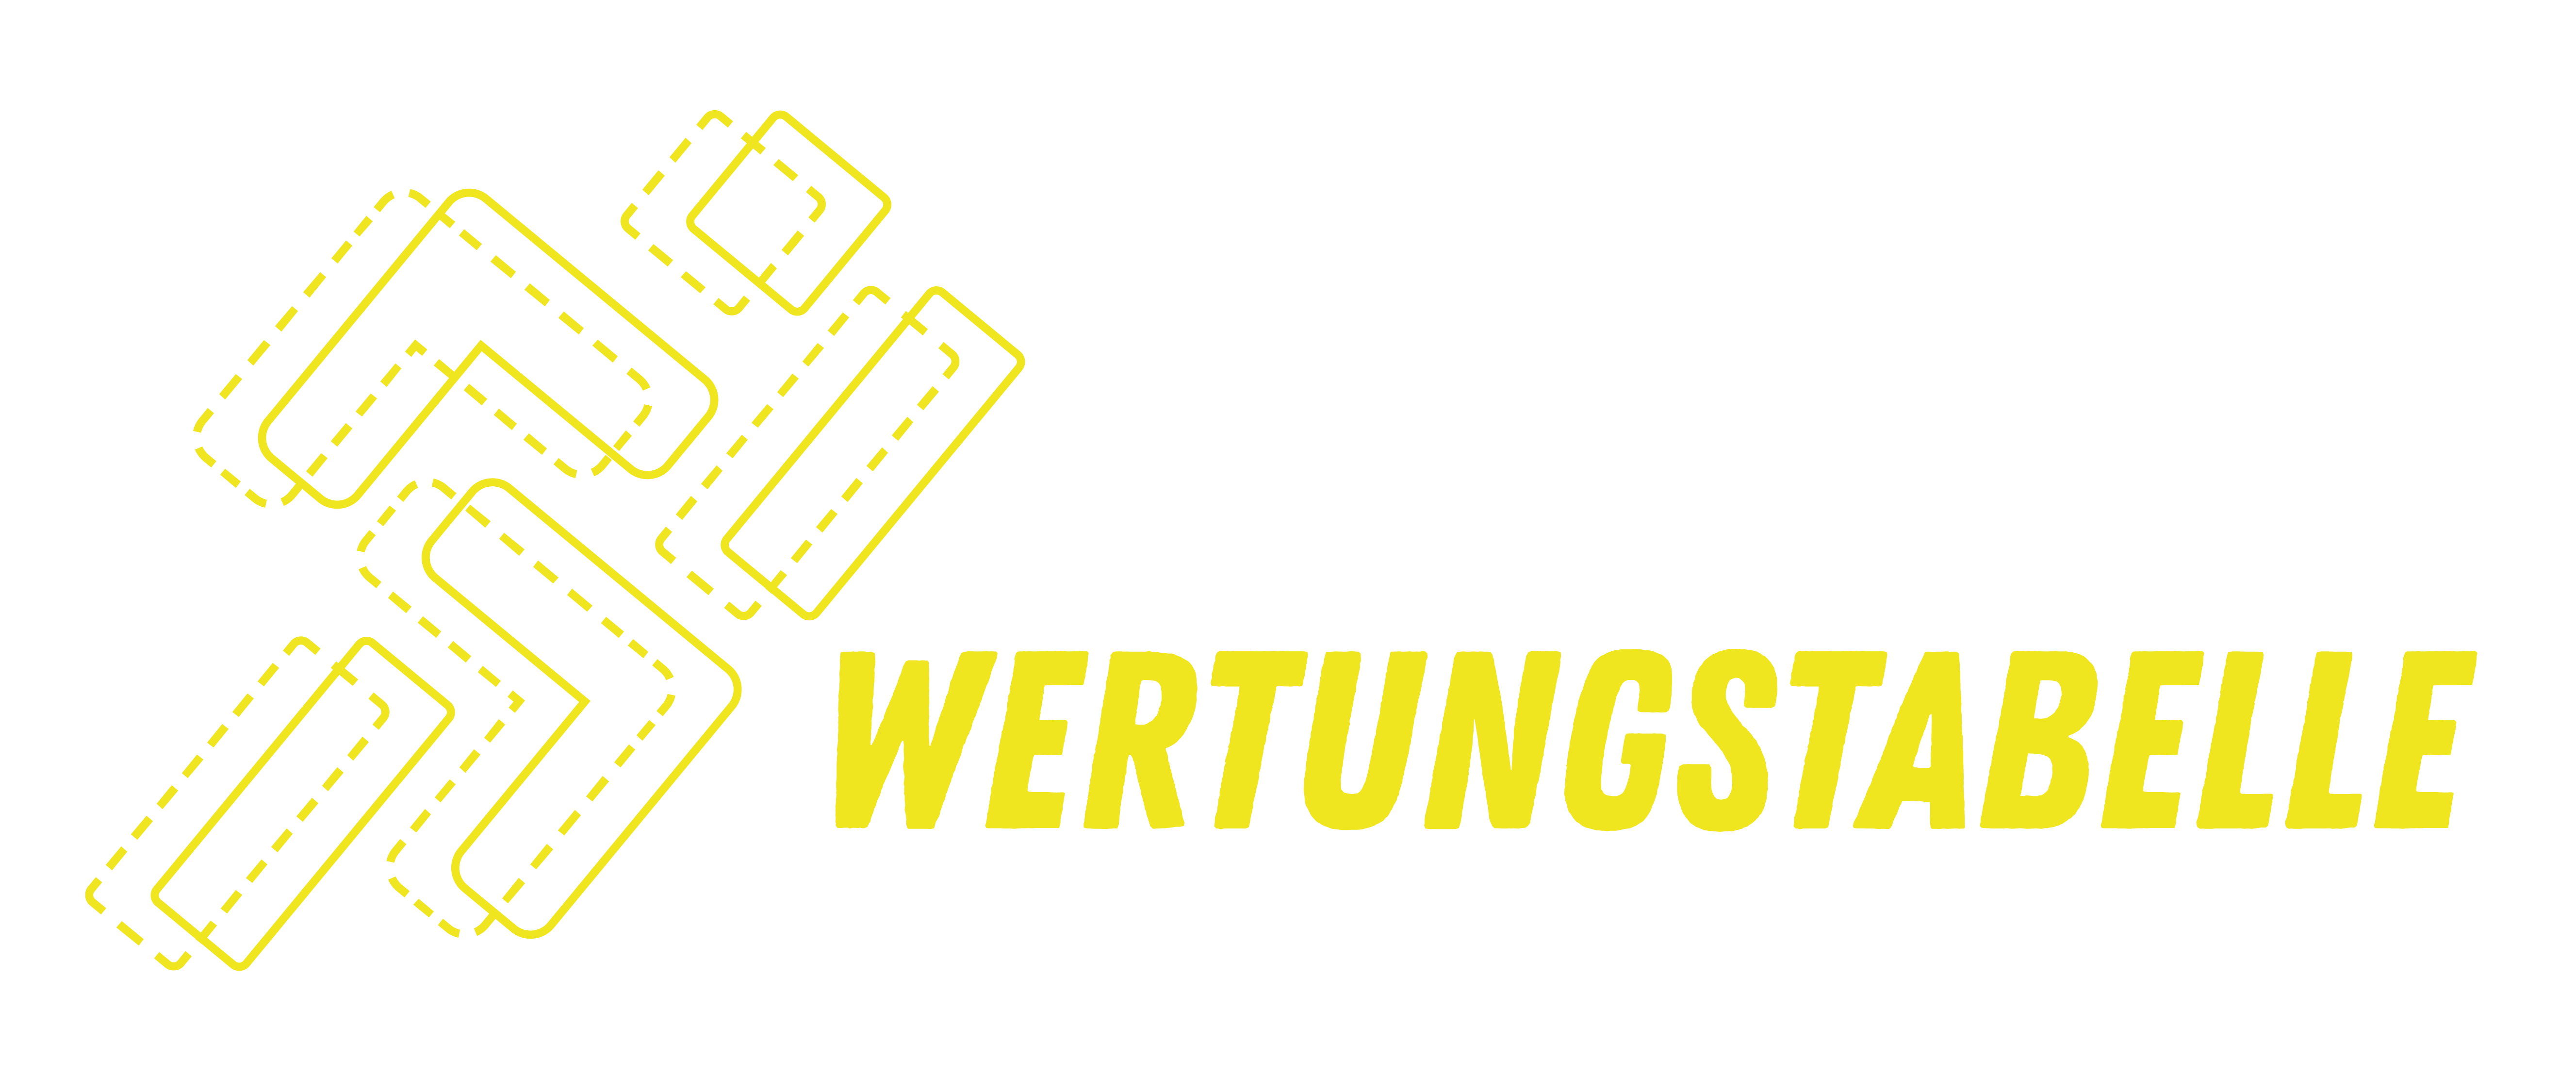 Wertungstabelle-Logo